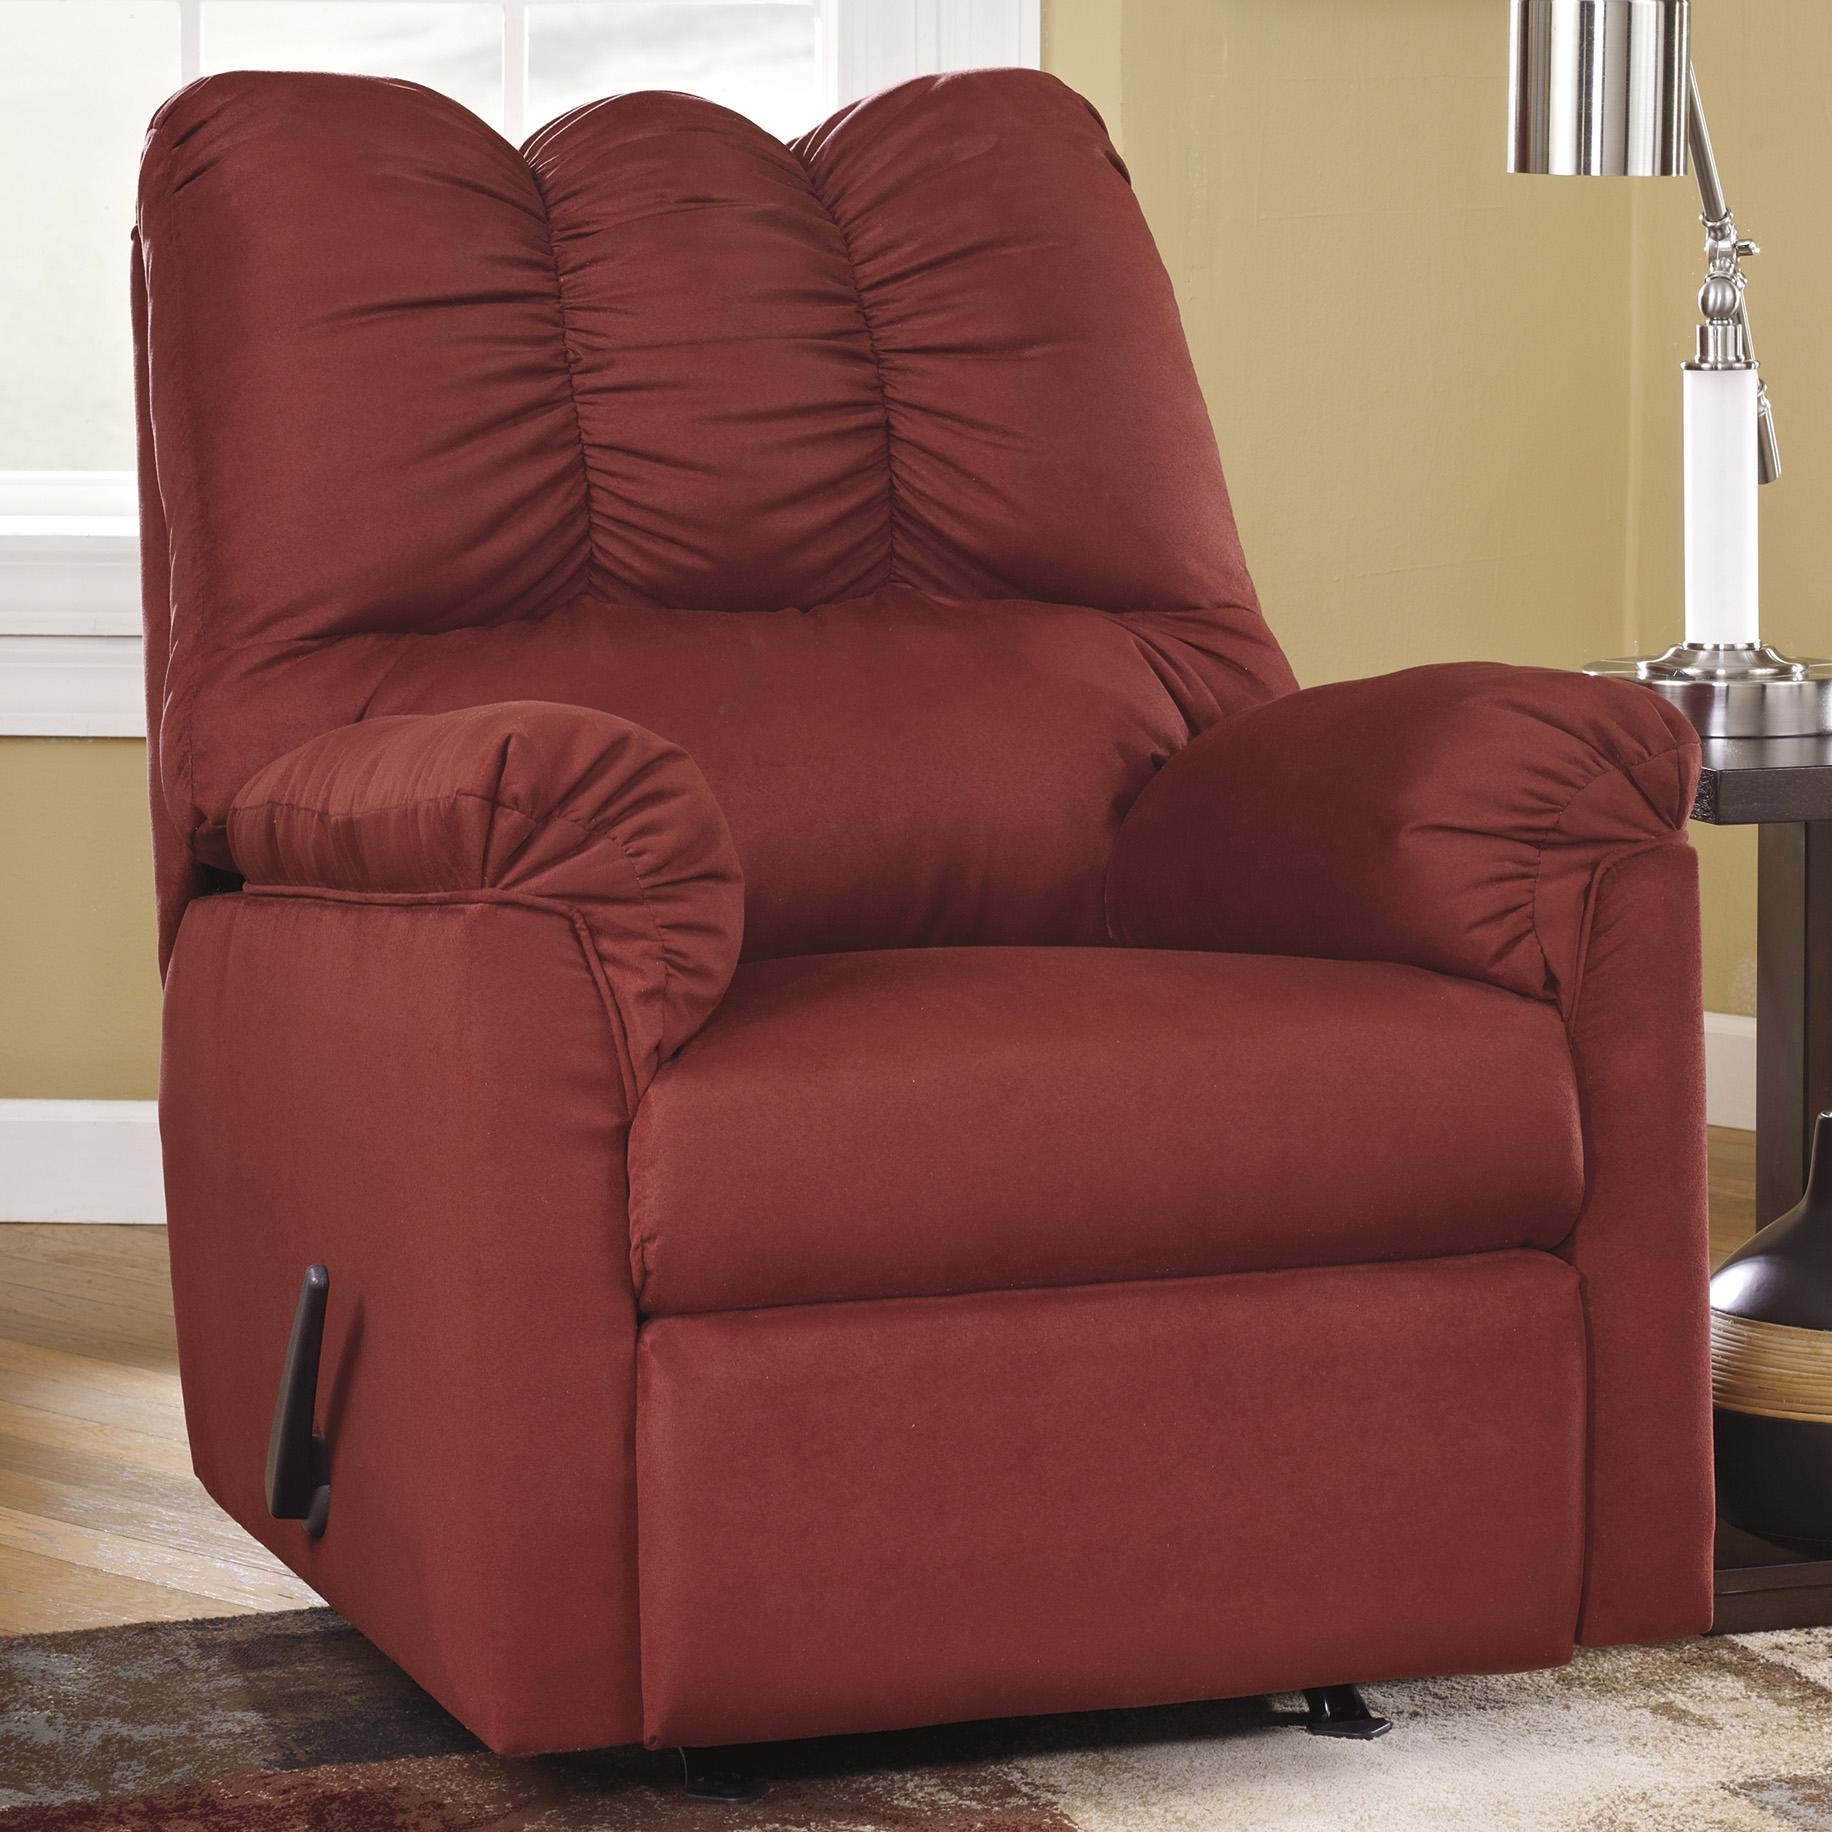 Signature Design by Ashley Darcy - Salsa Rocker Recliner - Item Number: 7500125